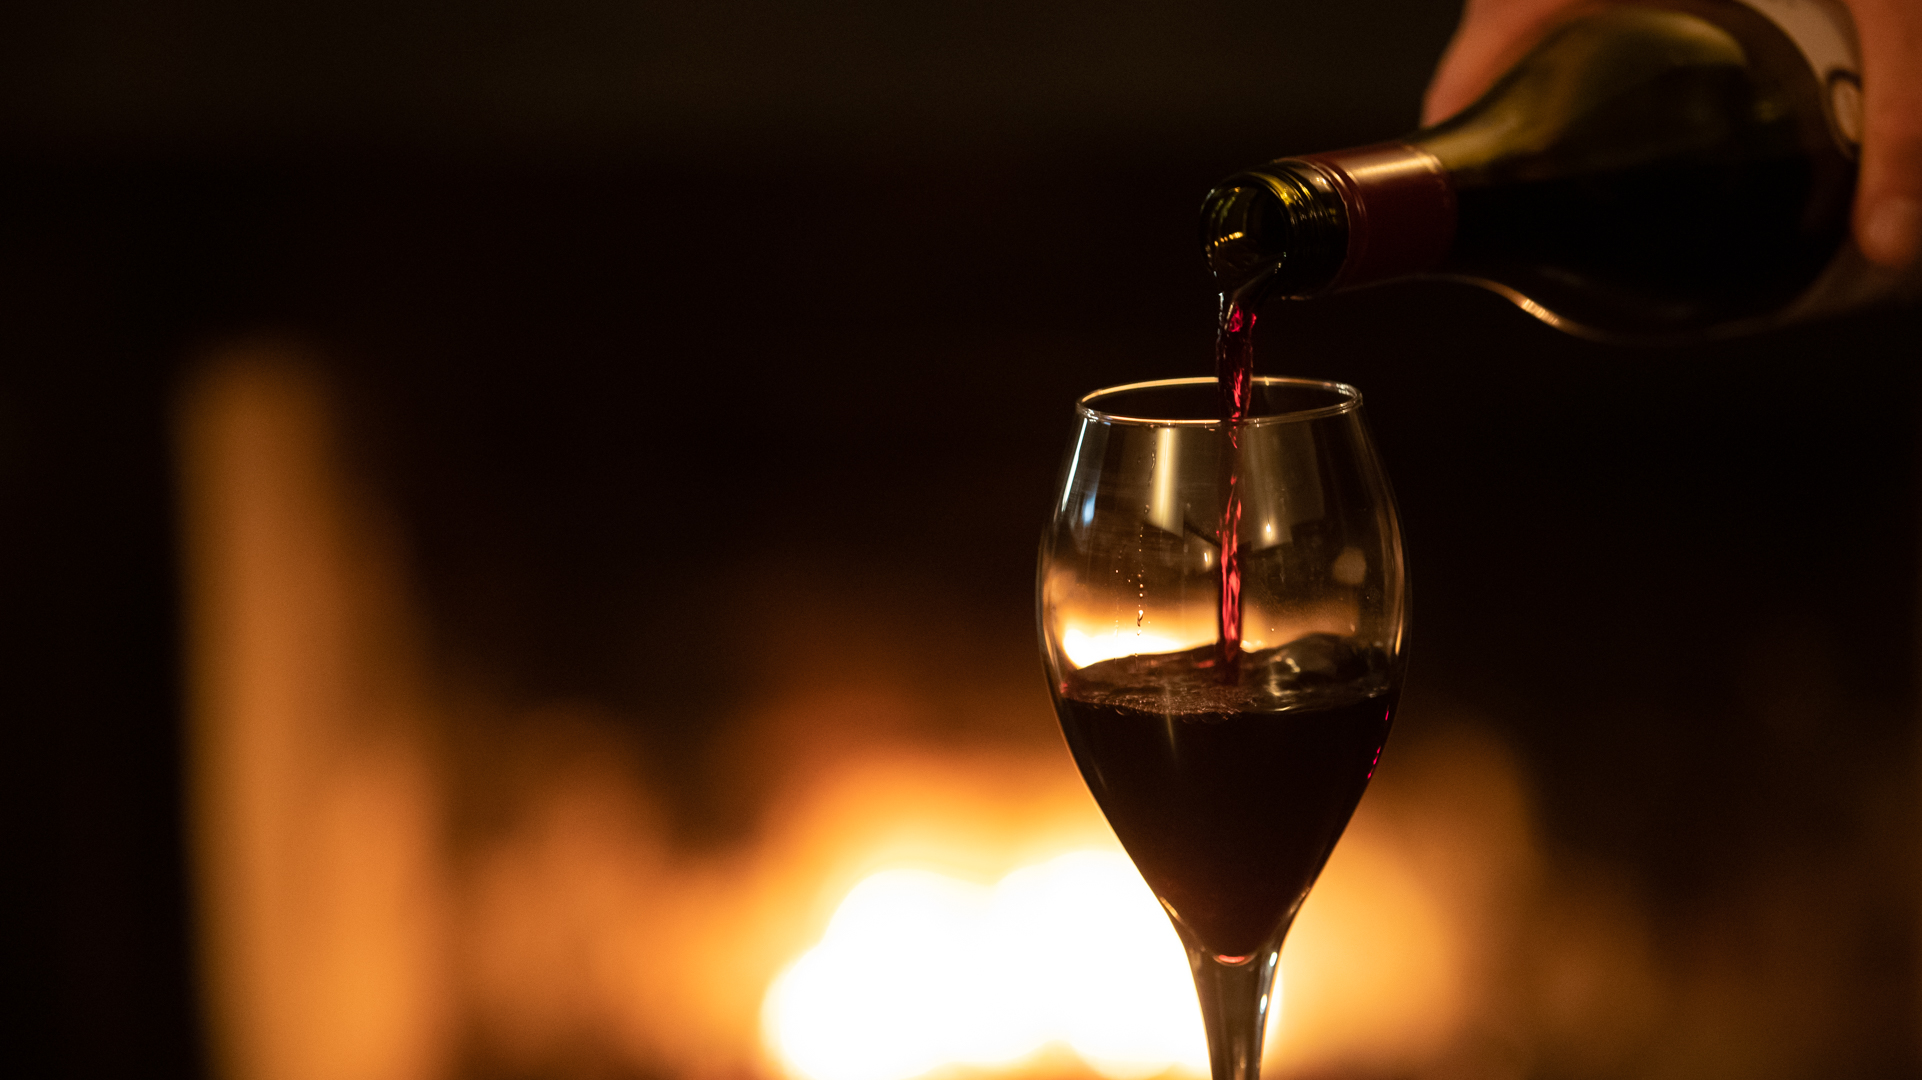 A glass of red wine is being poured in front of an out-of-focus burning fireplace in the background.